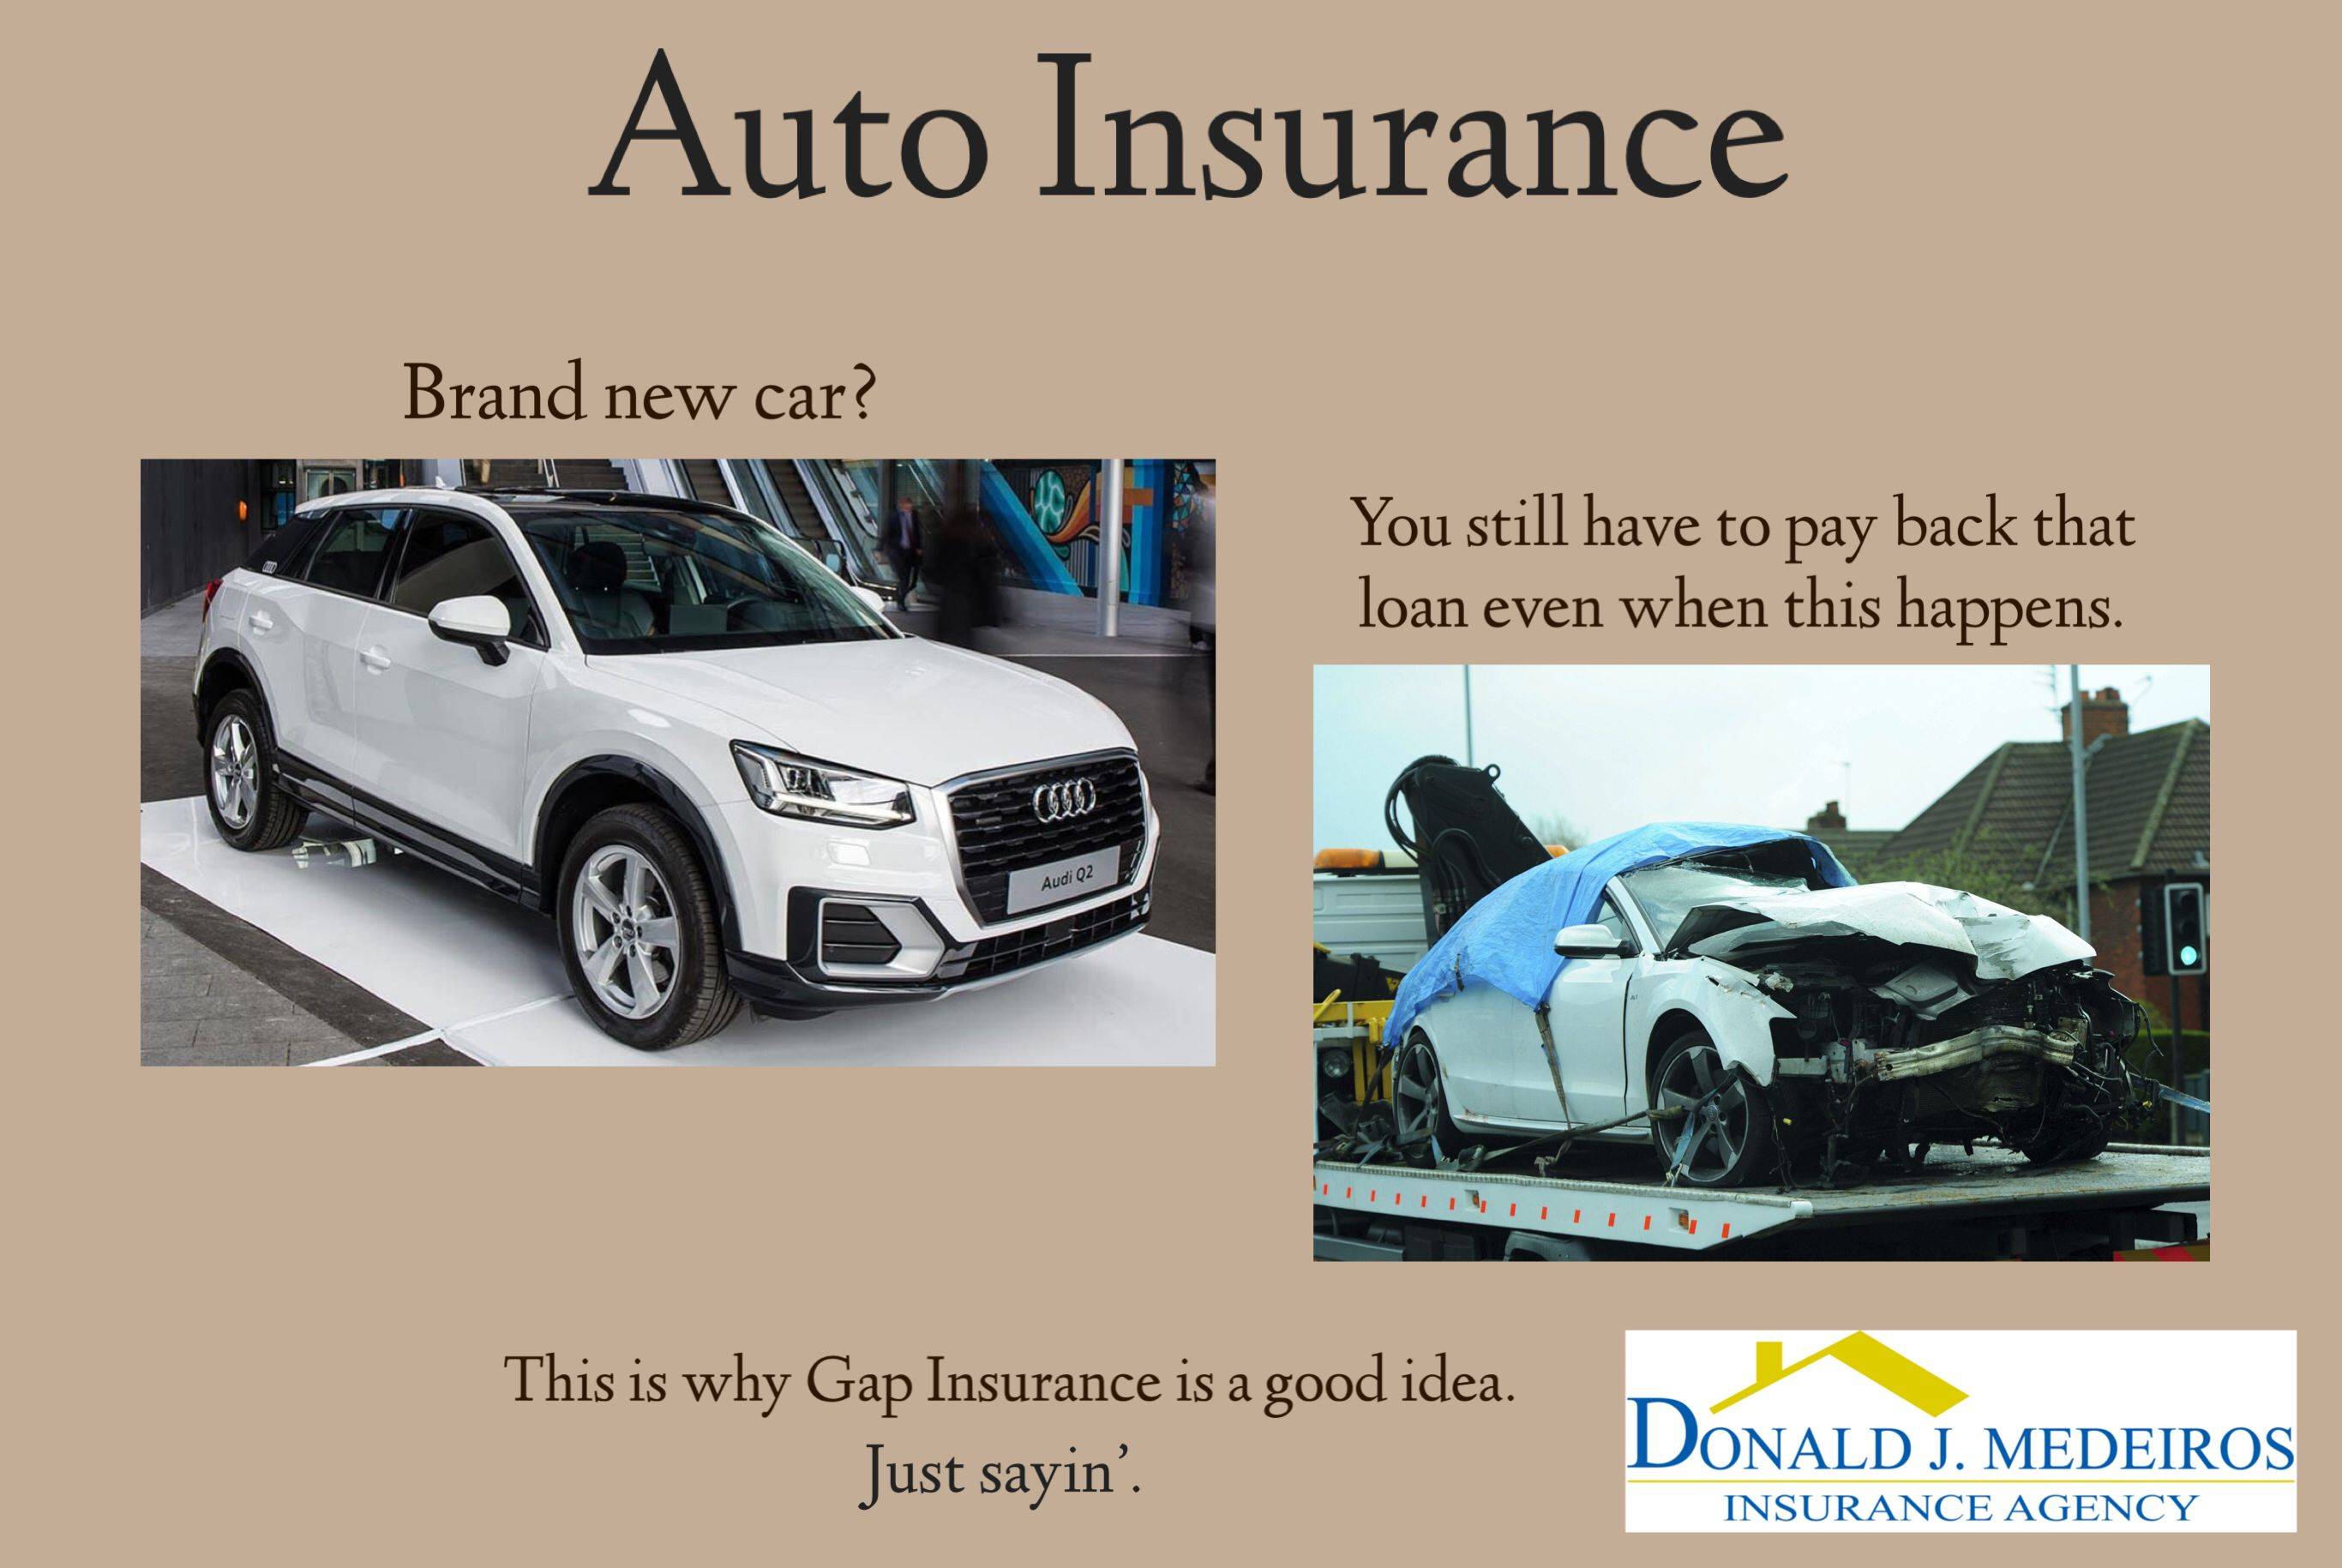 Gap Insurance A Great Idea For That New Car Insurance Agency Business Insurance Agency